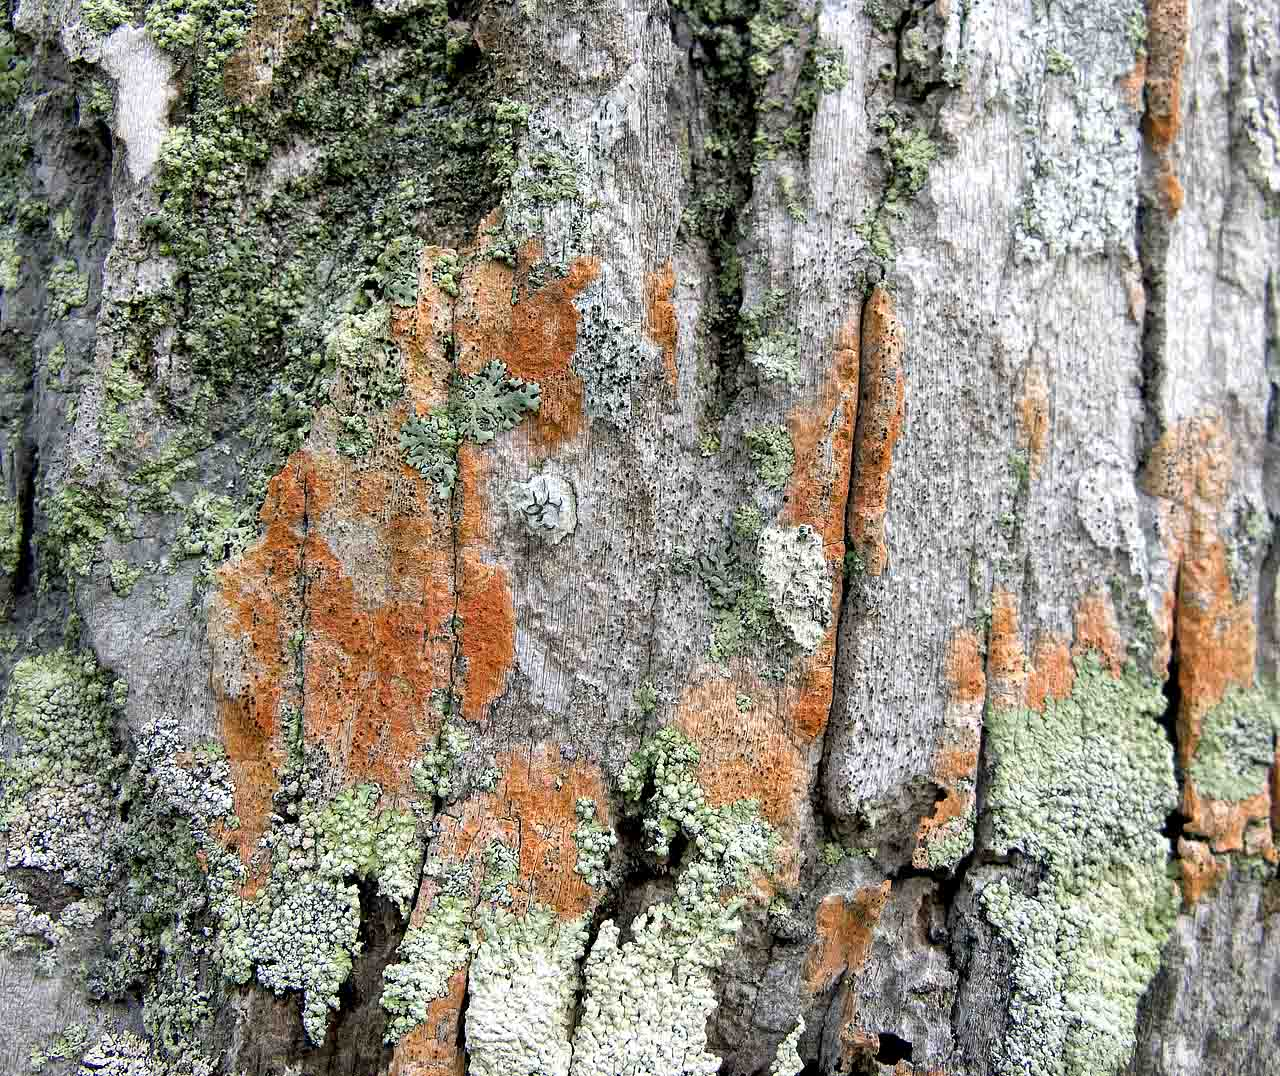 Lichens on coconut tree